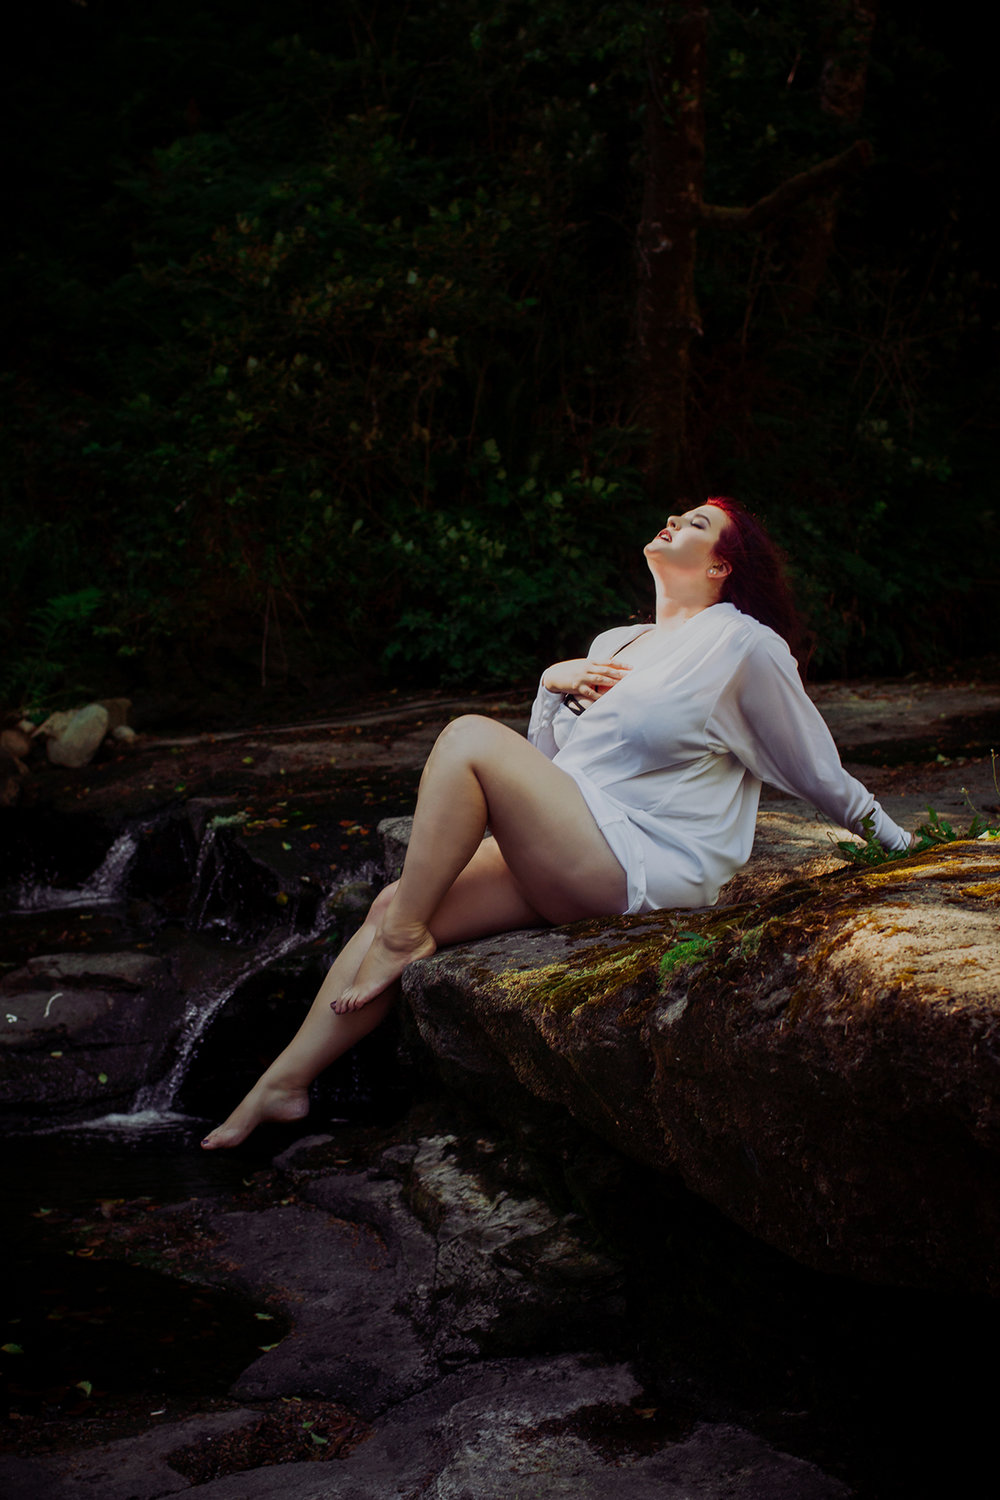 Victoria-BC-Outdoor-Boudoir-Moss-Photography-3.jpg